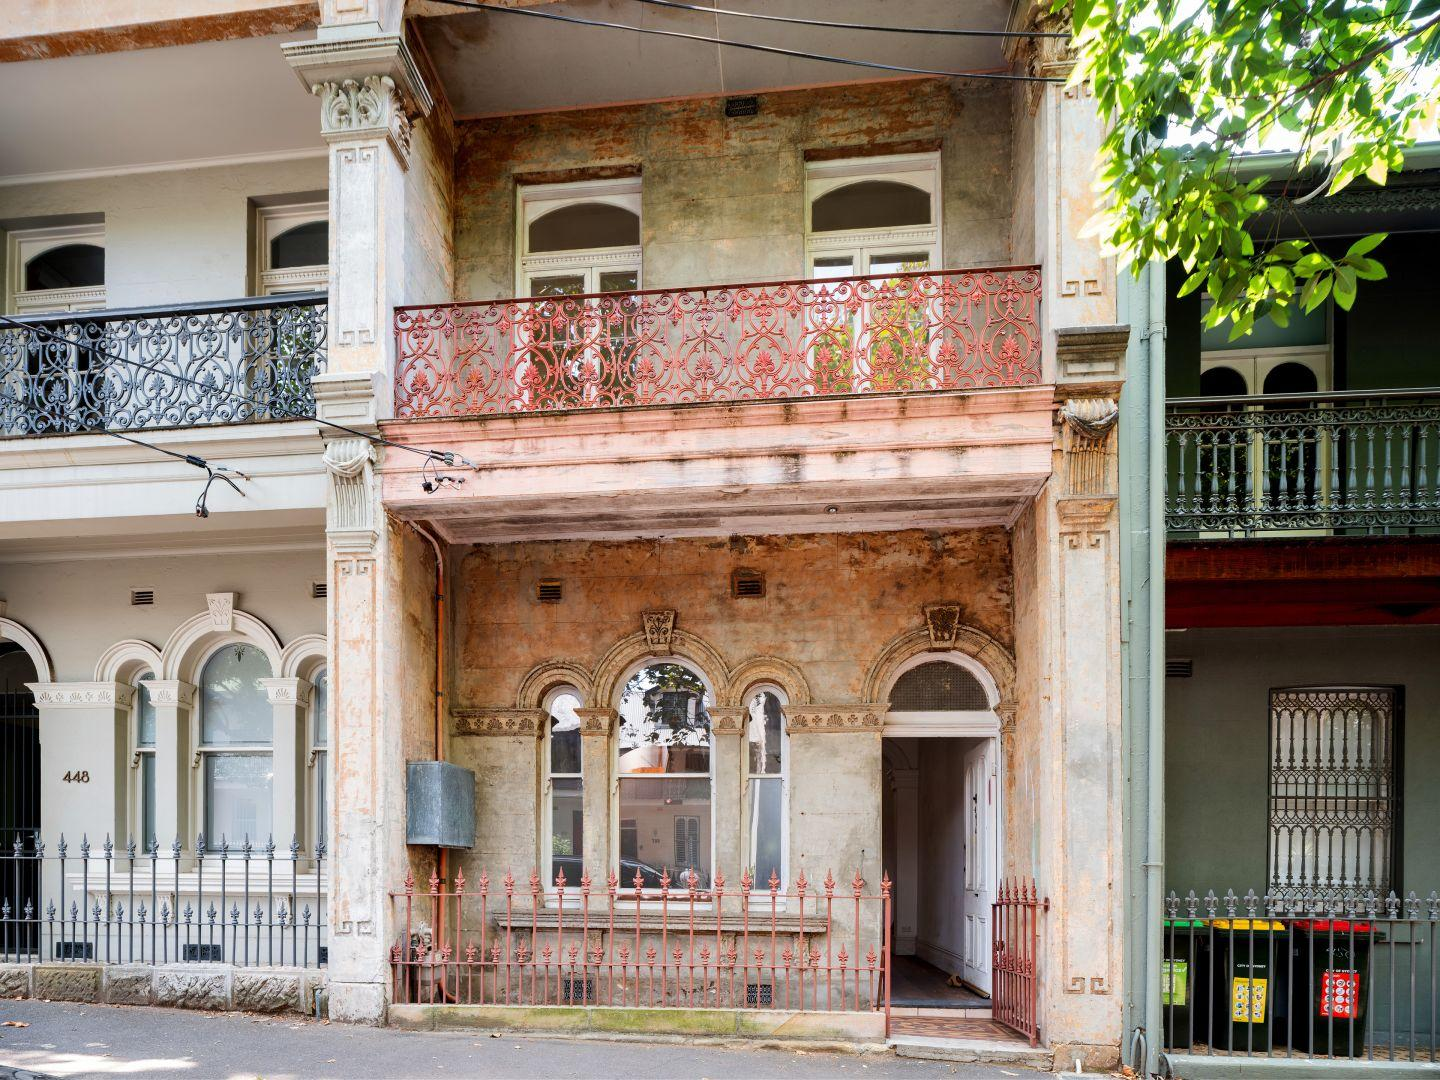 Owner in tears as Sydney home with shady history sells for $2.87m